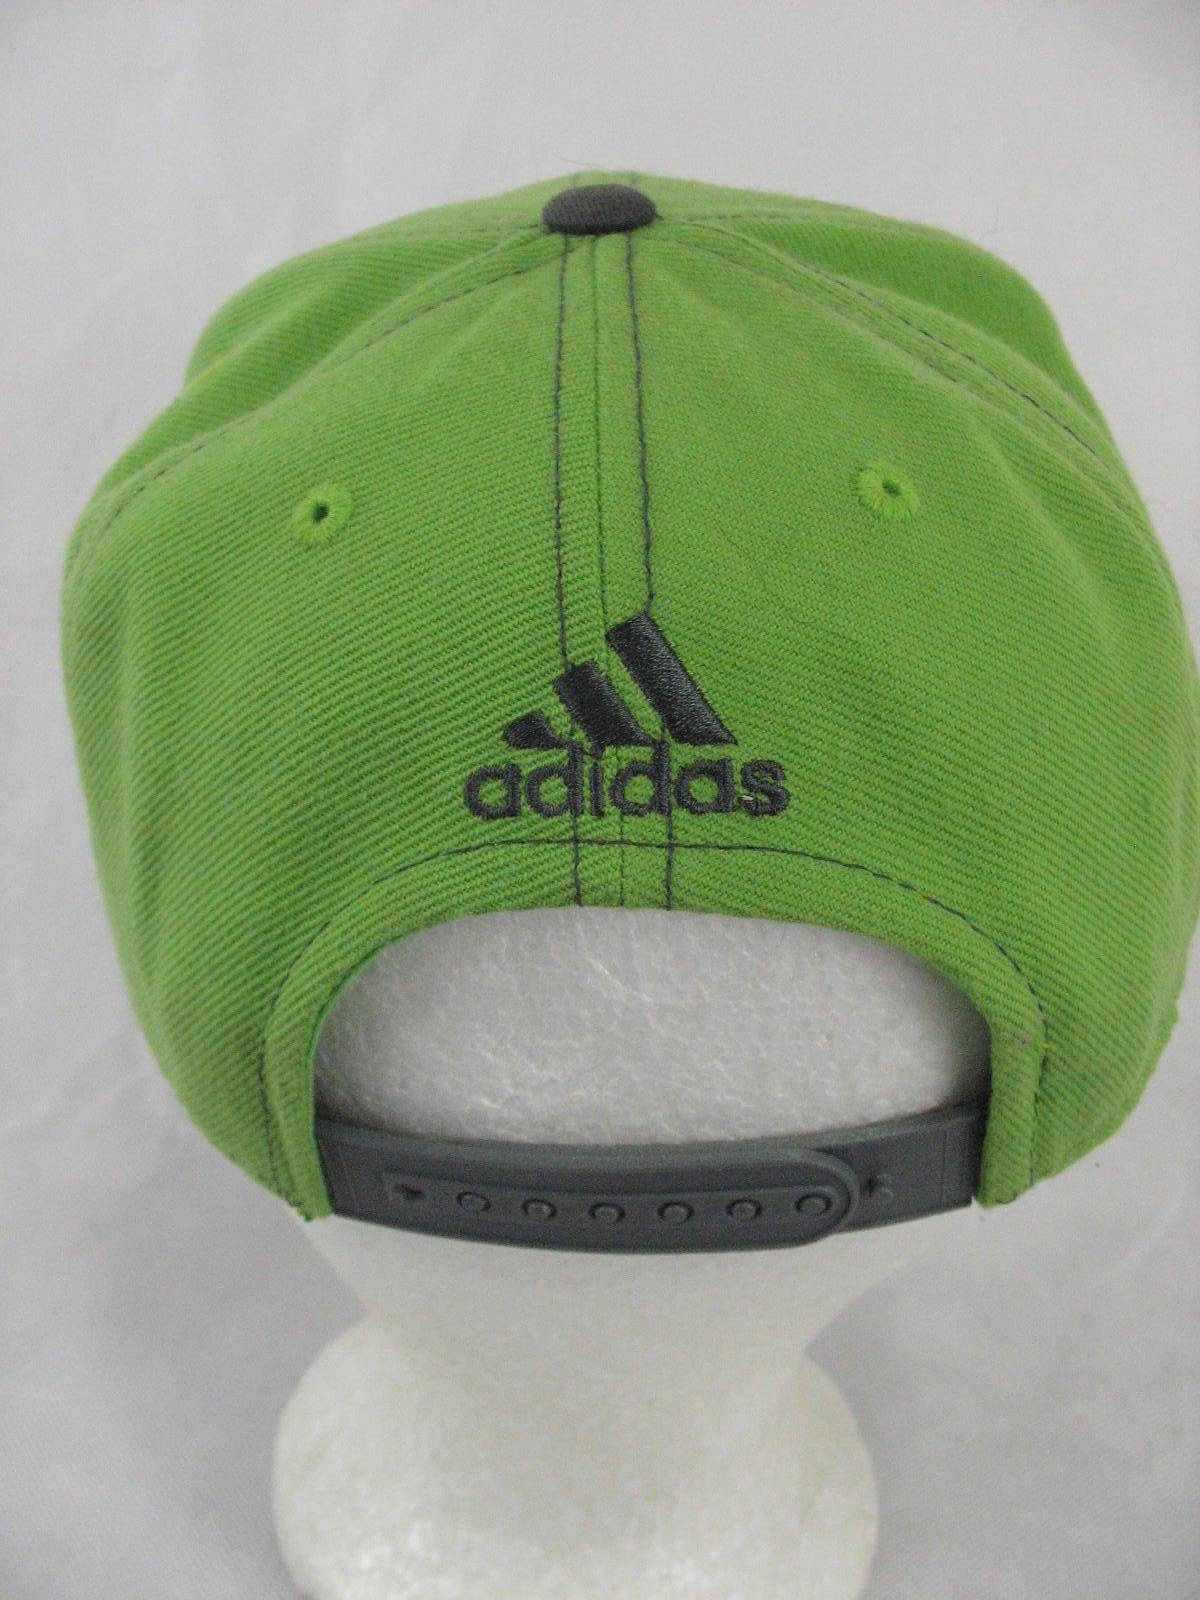 d45d176dc59 Seattle Sounders FC Adidas Green Snapback Adjustable Flat Bill Hat Lid